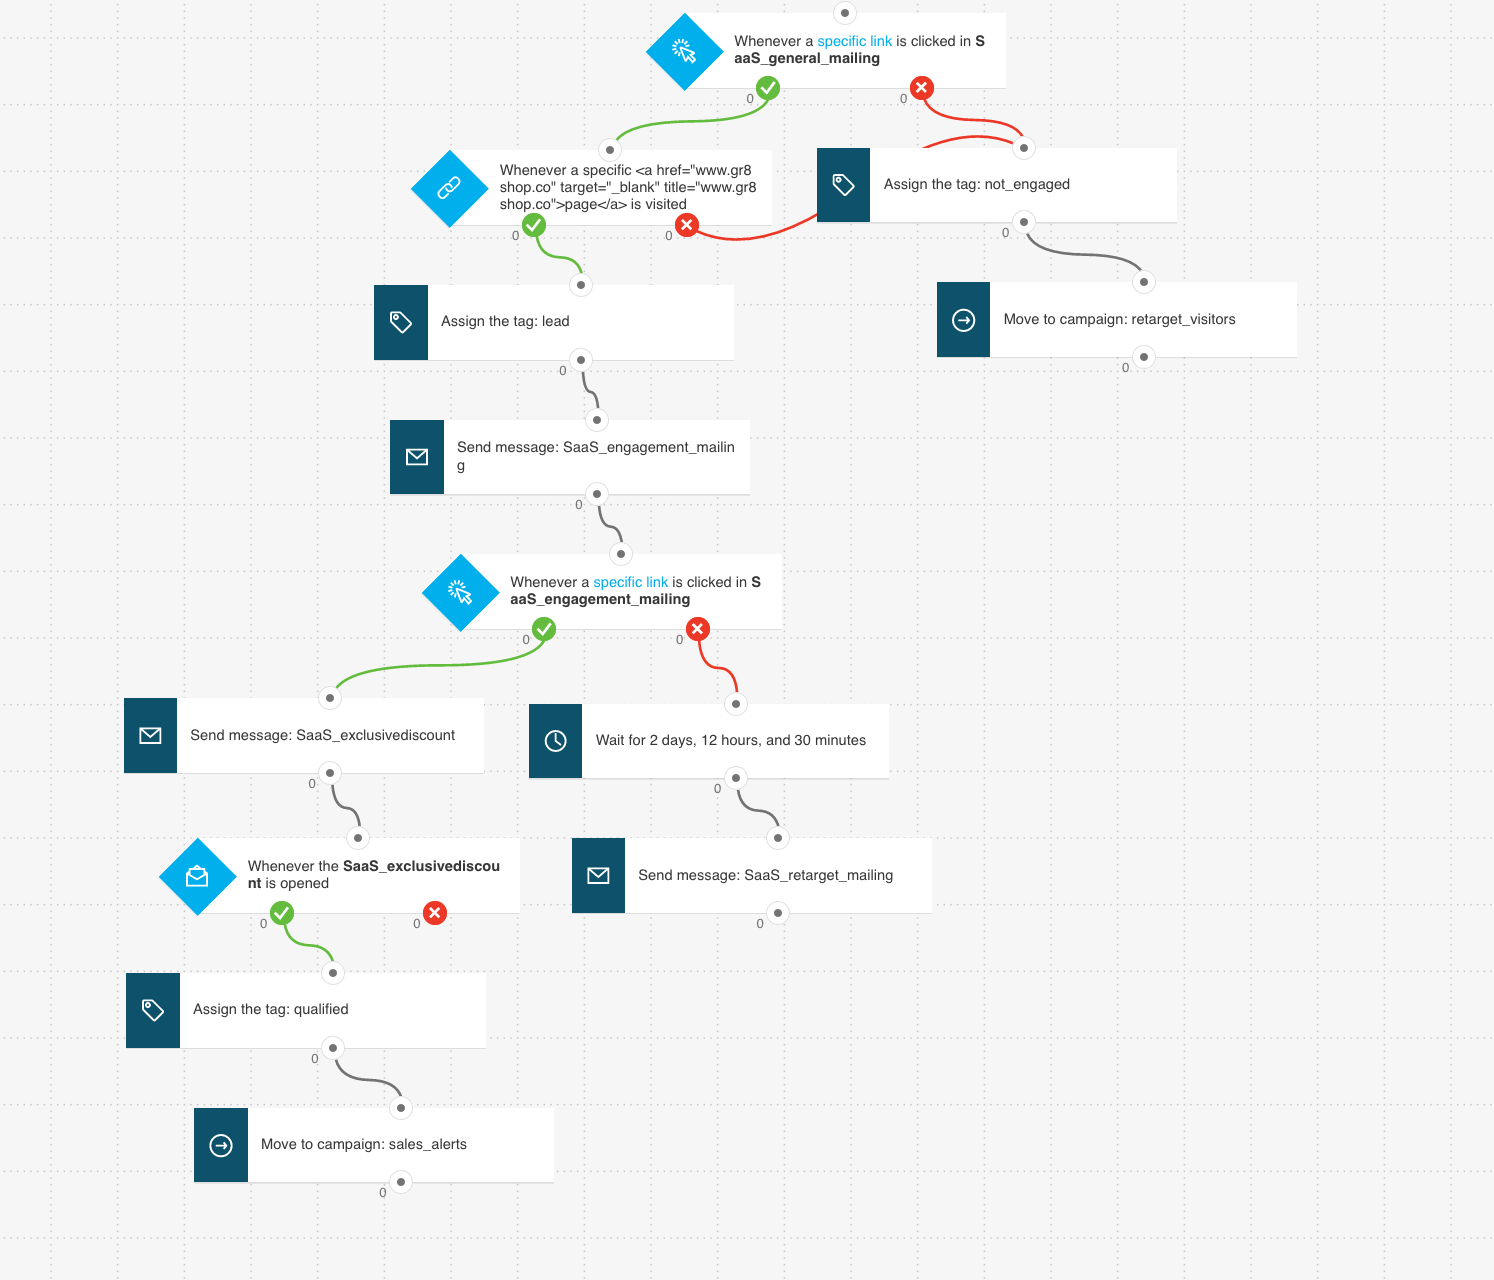 Workflow example showing how you can nurture new leads using marketing automation Read more on https://www.getresponse.com/blog/20-automated-emails